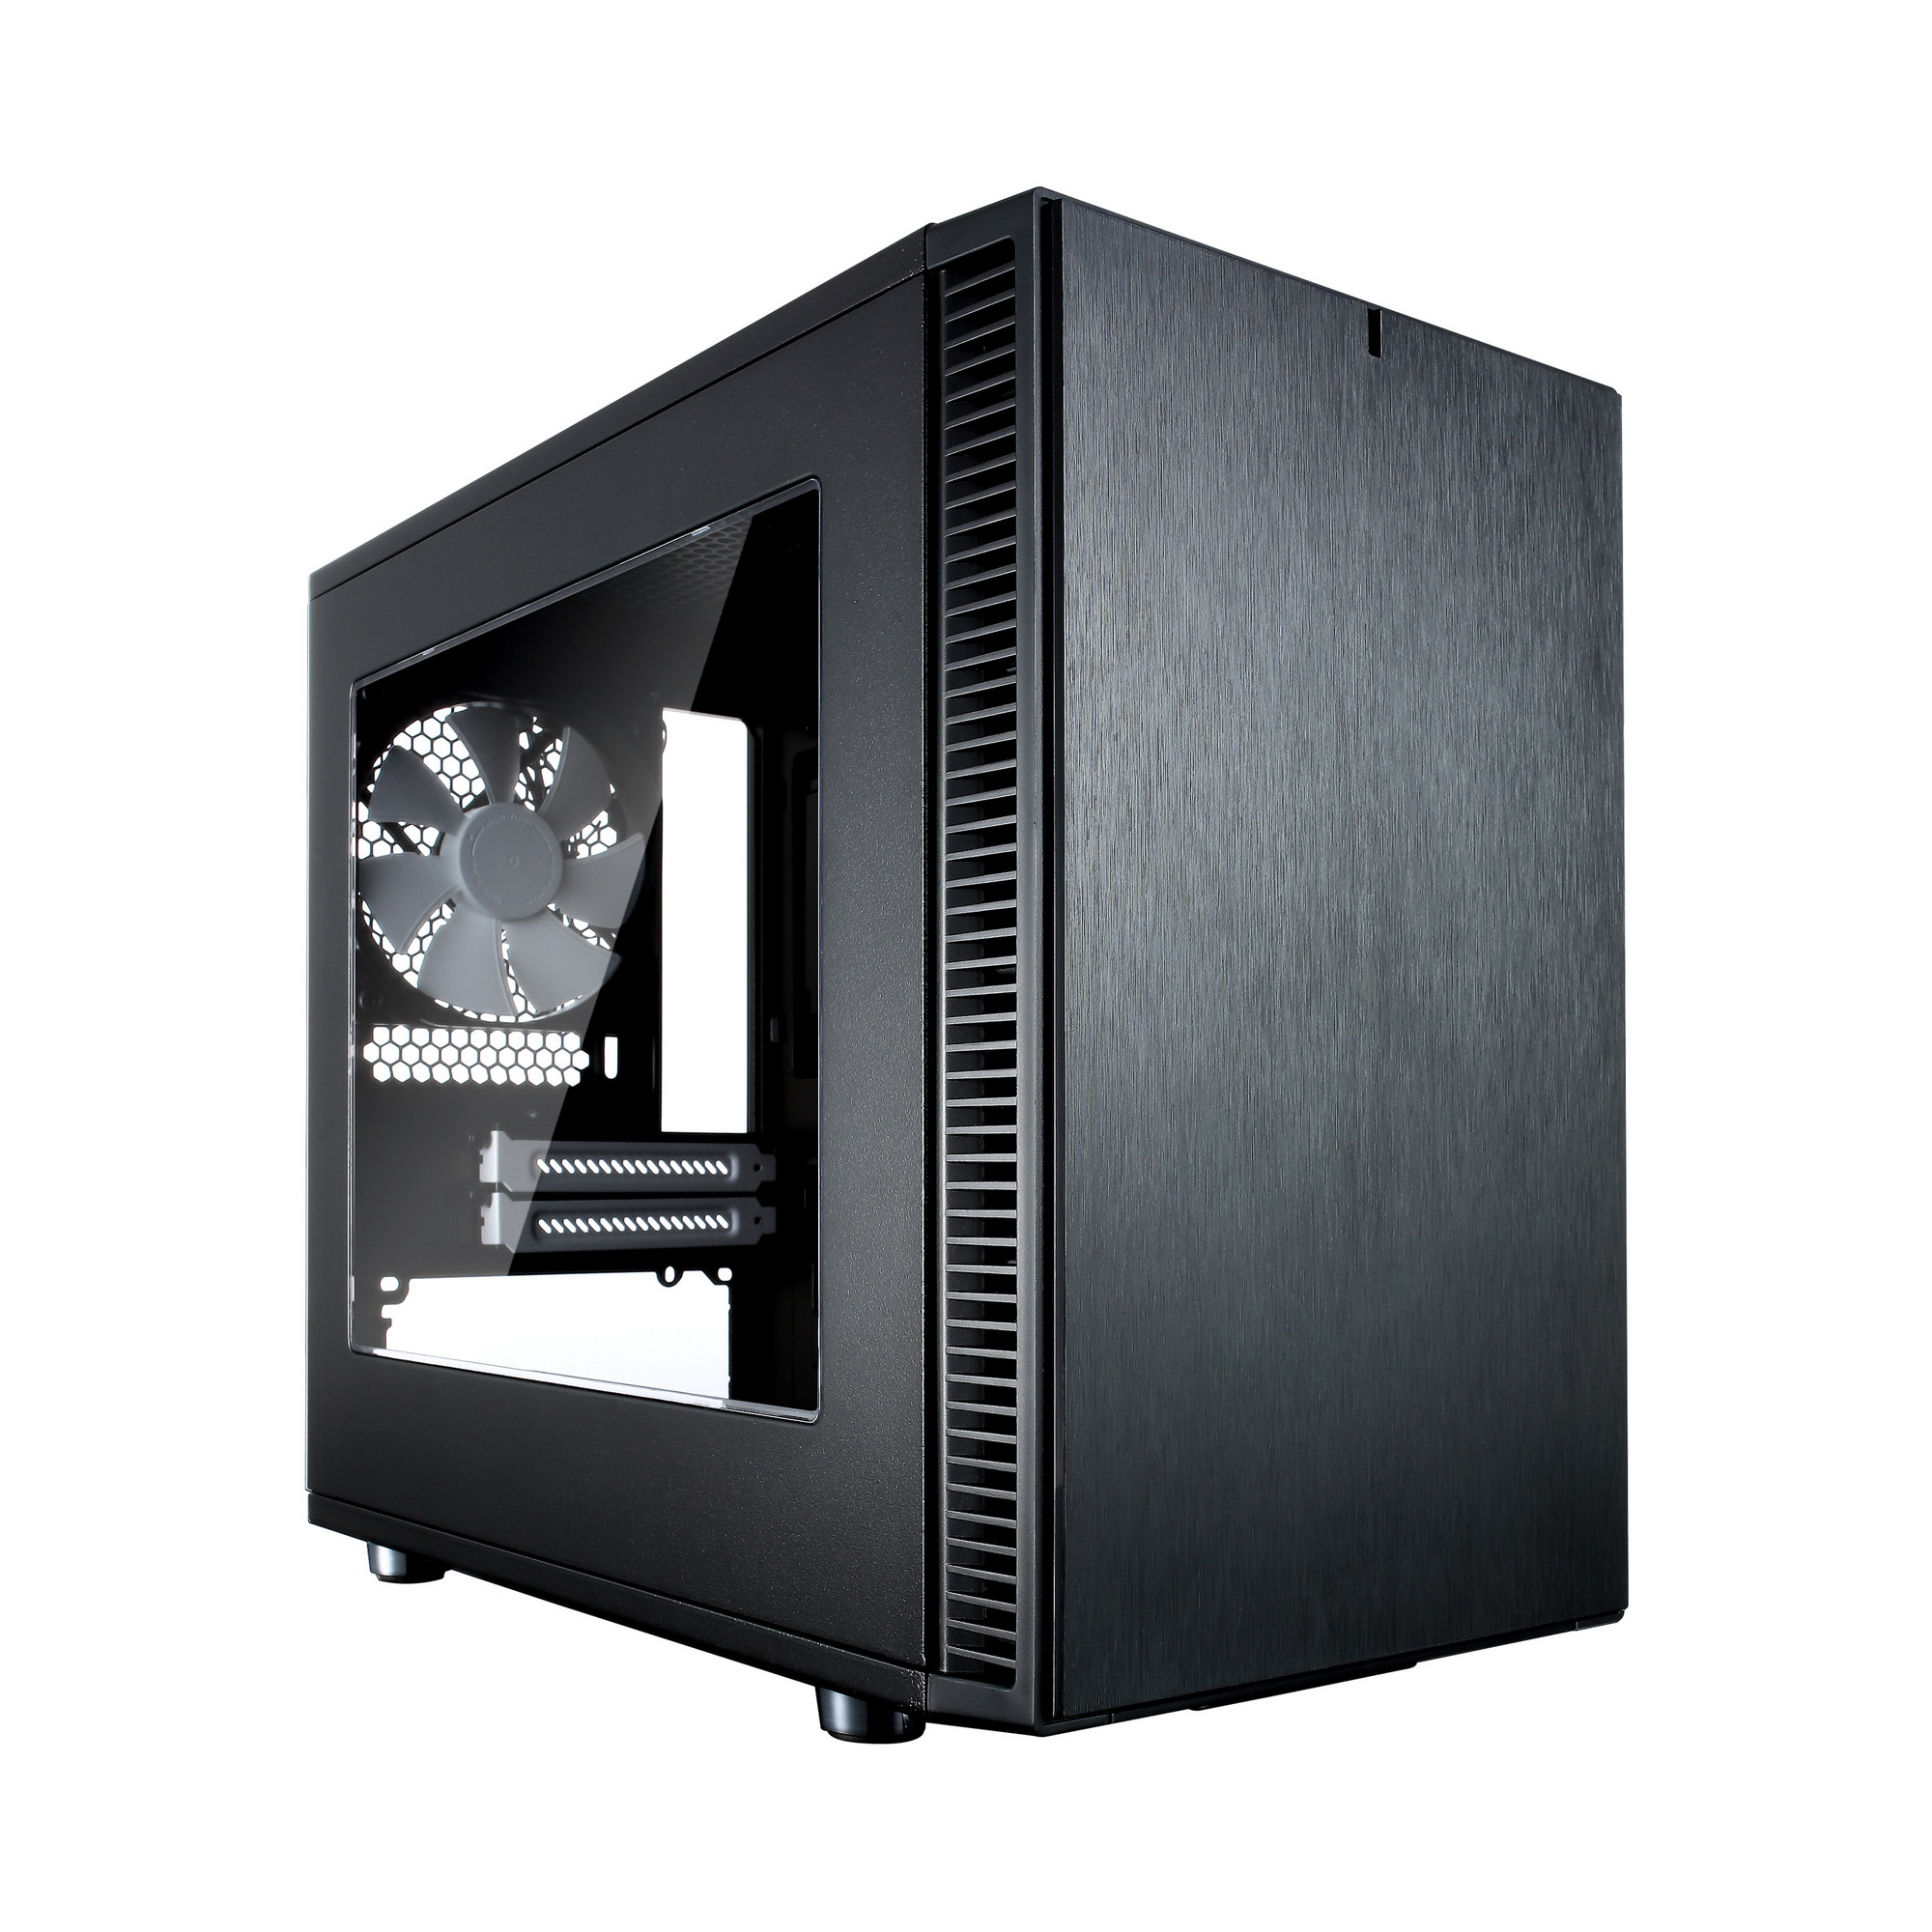 Корпус Fractal Design Define Nano S (FD-CA-DEF-NANO-S-BK) черный корпус mini itx fractal design define nano s без бп чёрный